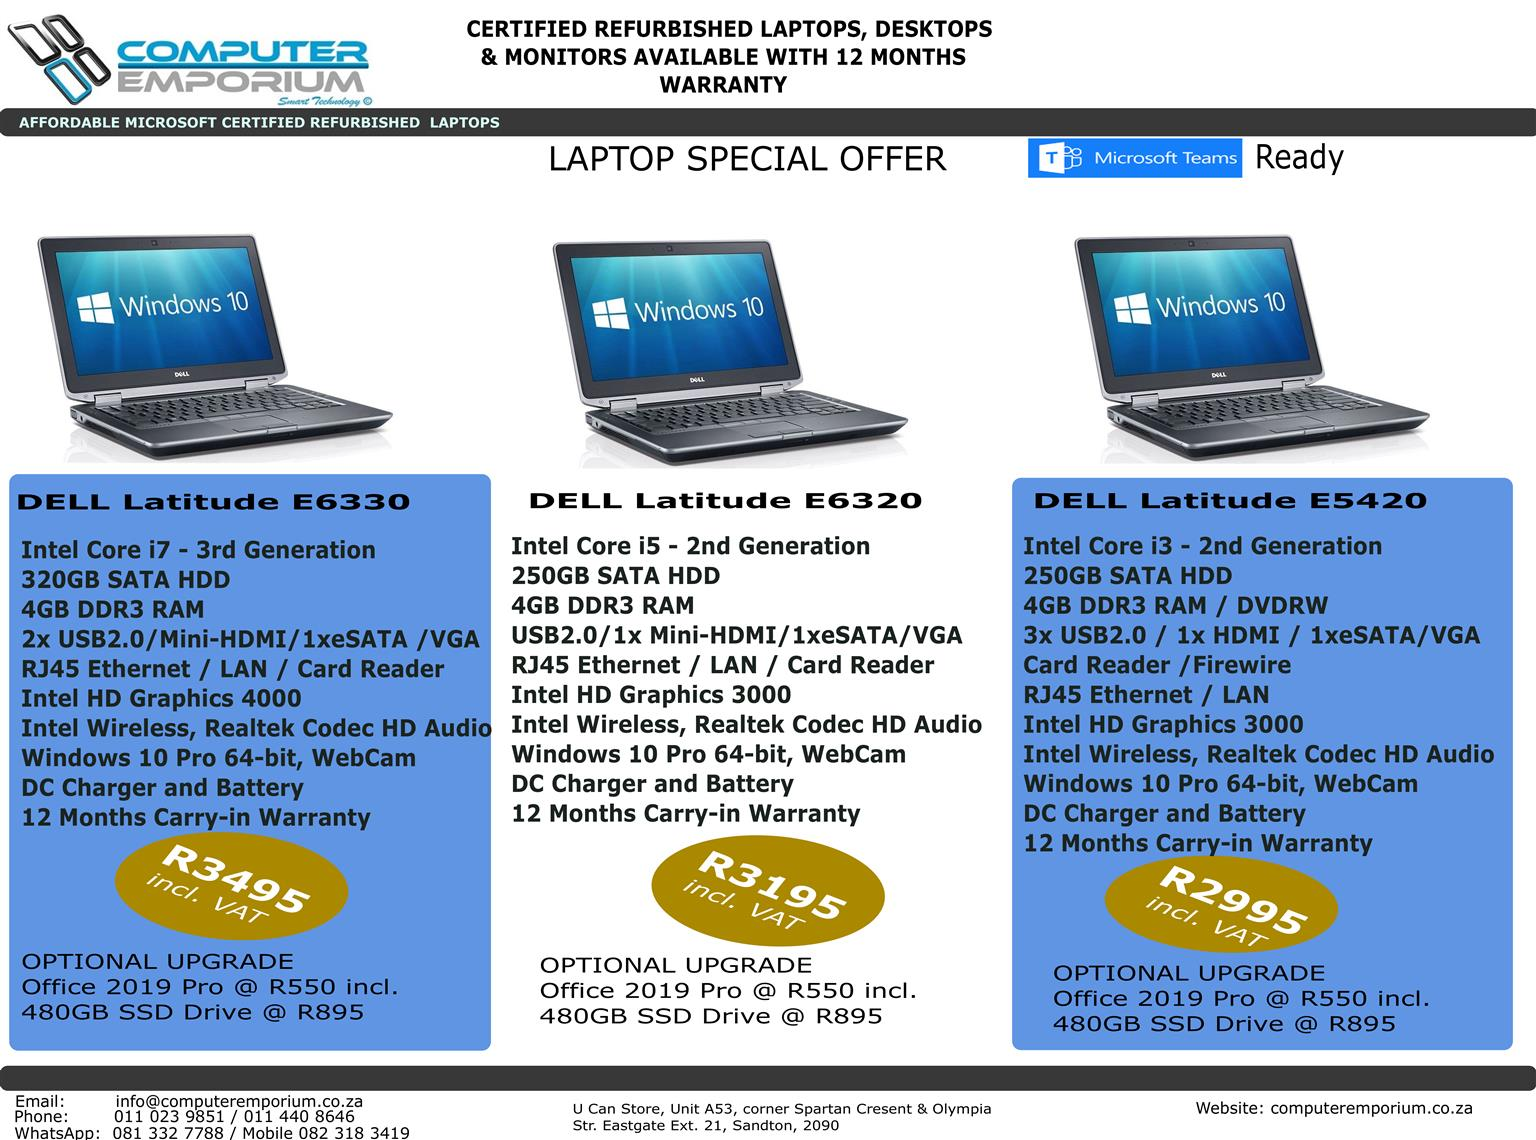 DELL Latitude Laptops Special Offer